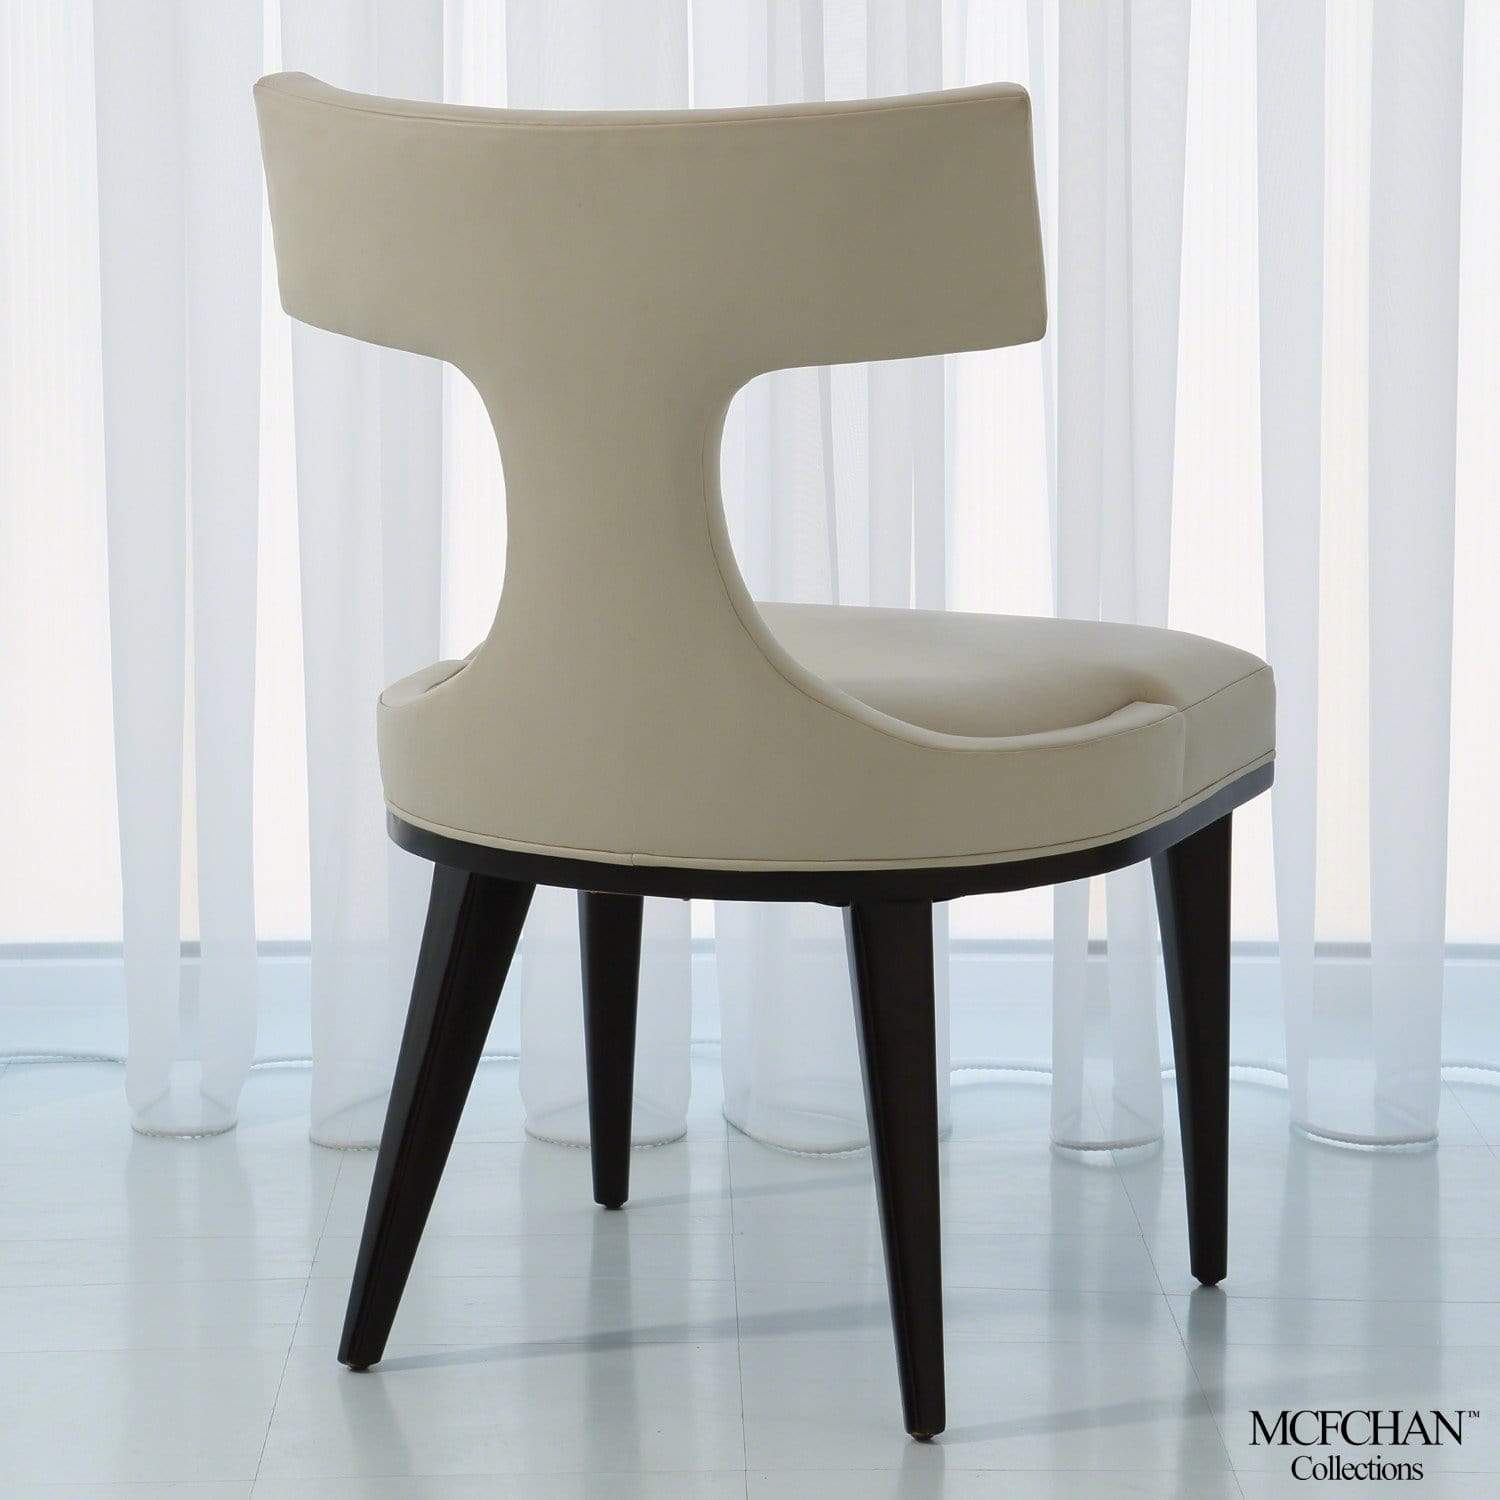 Global Views Global Views Anvil Back Ivory Leather Dining Chair MC-2511